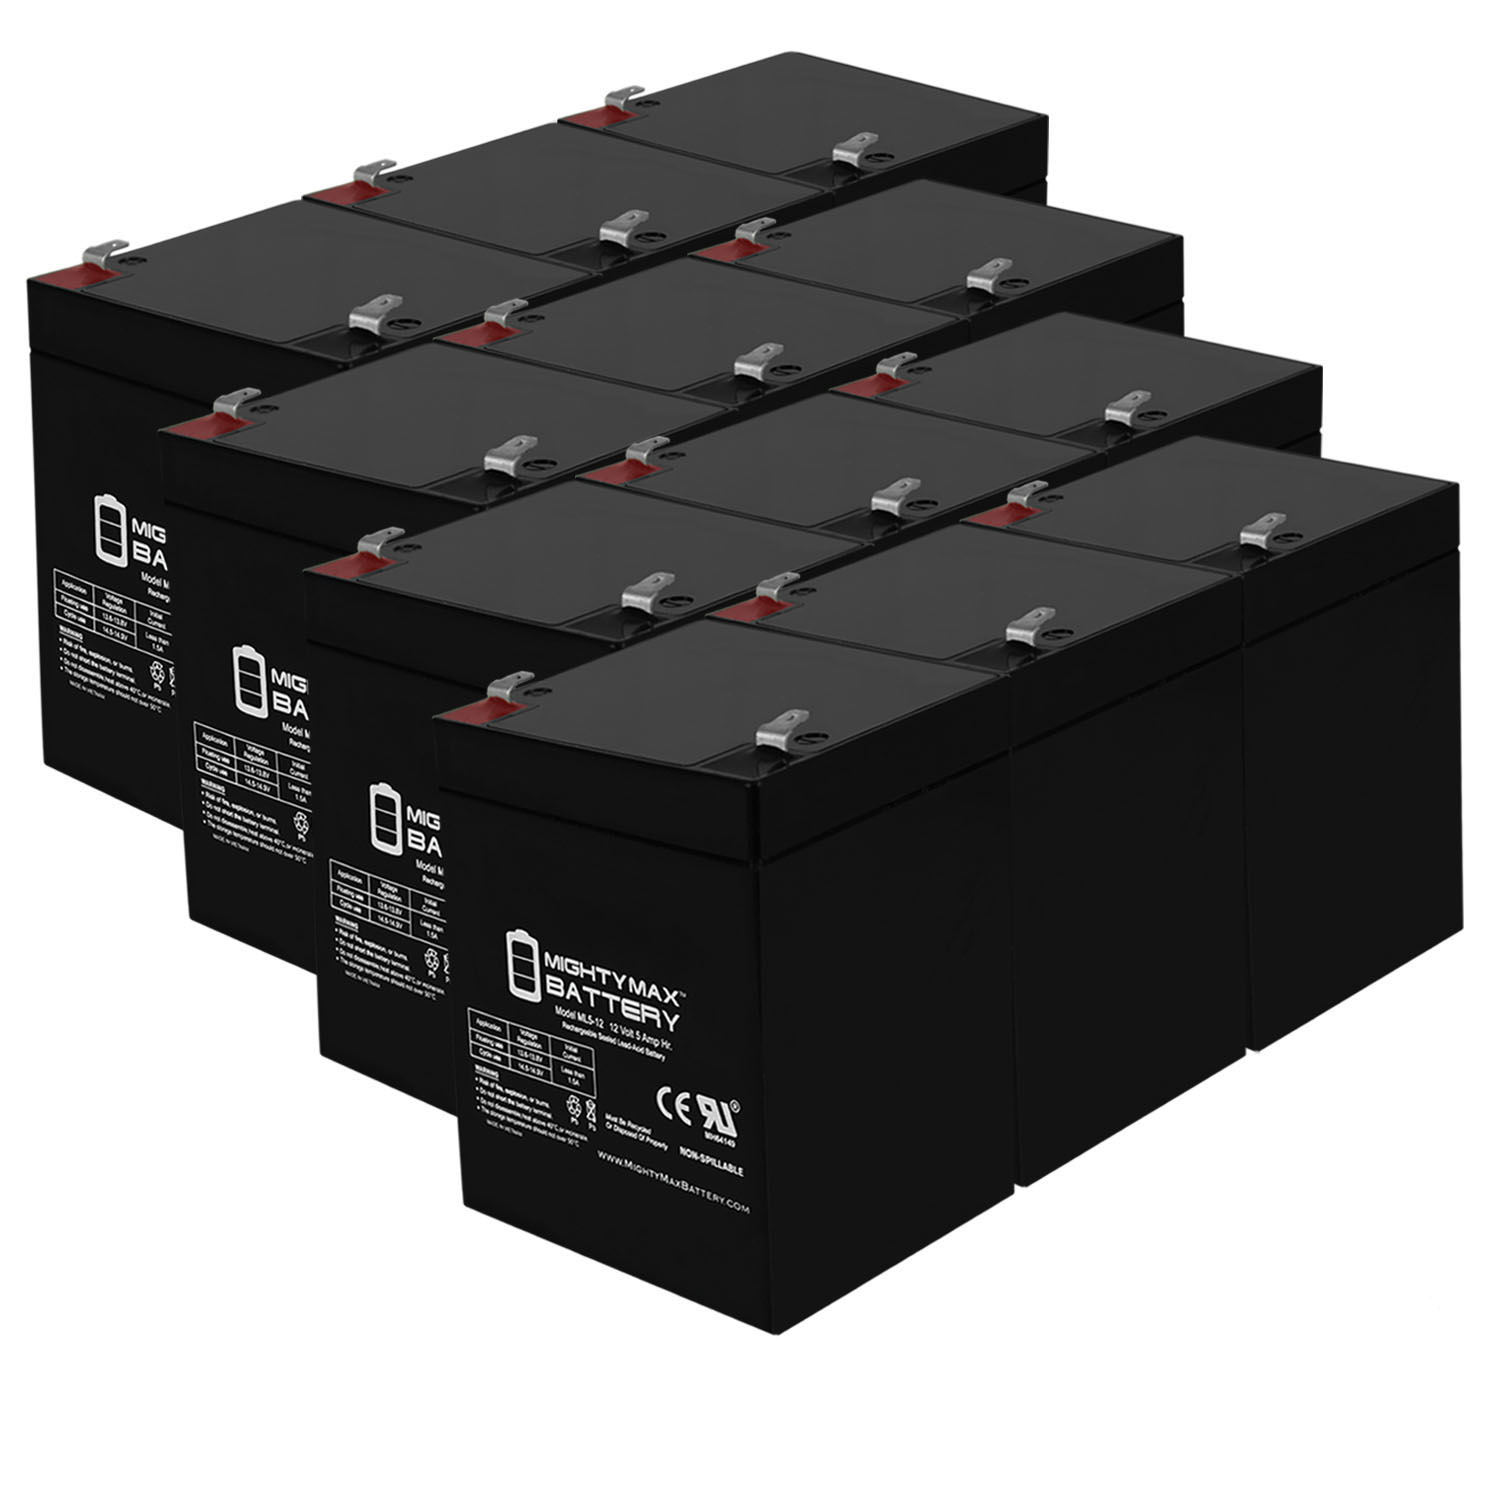 12V 5AH Battery Replacement for Dorcy Big Shot Spotlight - 12 Pack